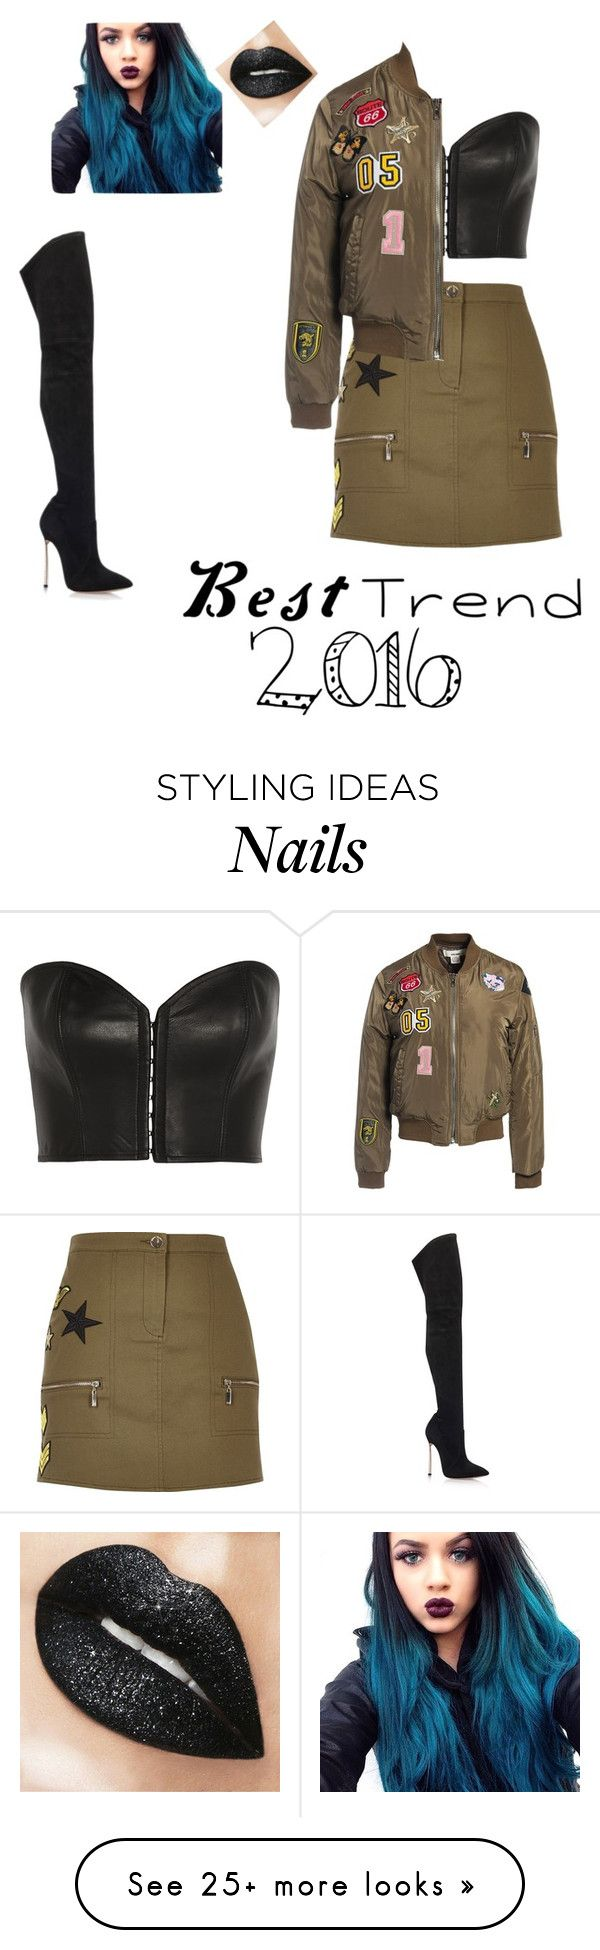 """""""Military style"""" by lilangelrere on Polyvore featuring River Island, Casadei, Kiki de Montparnasse and Sans Souci"""